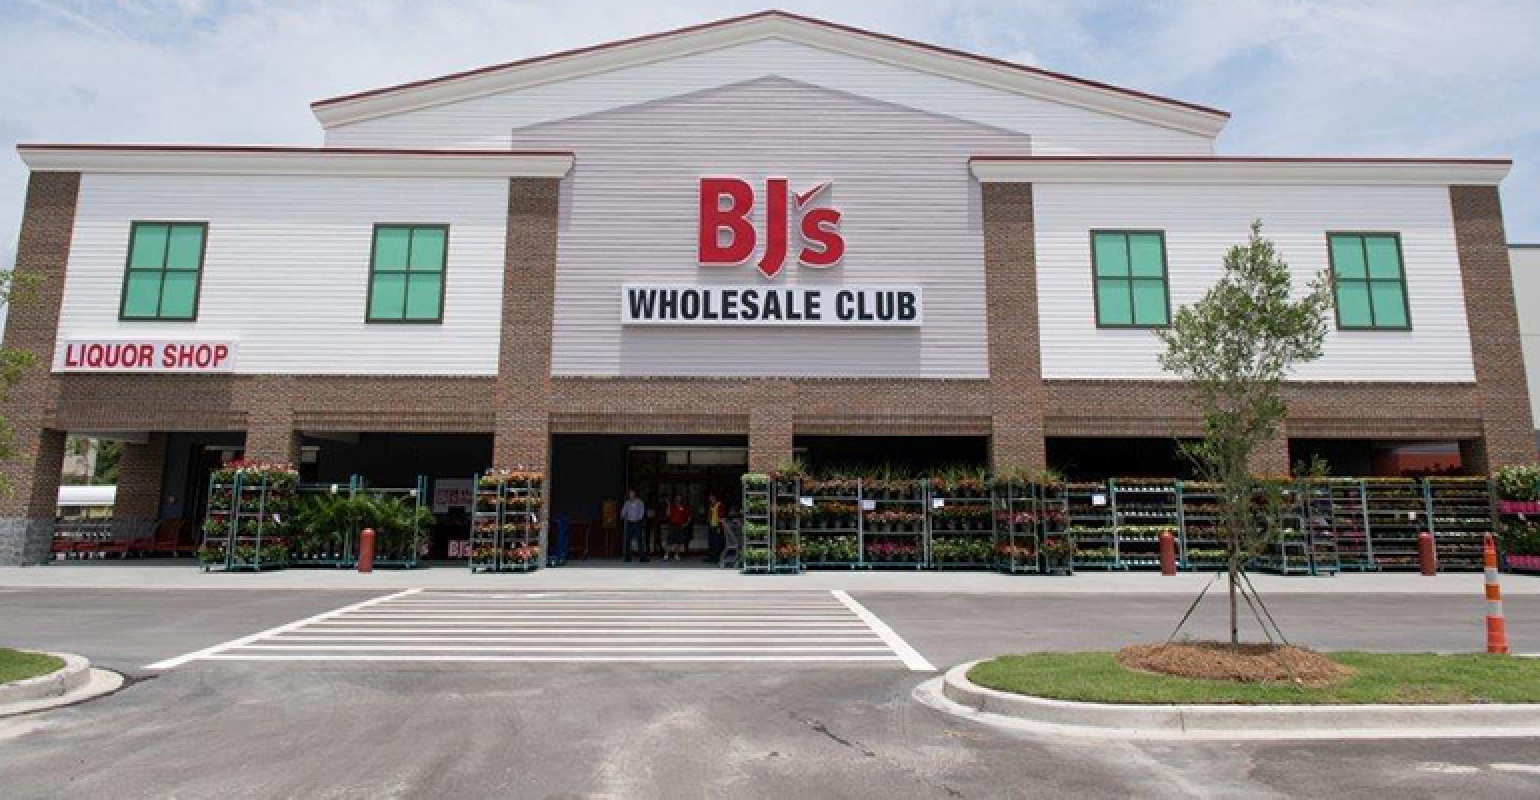 image relating to Bjs One Day Pass Printable titled BJs expands into Michigan Grocery store Information